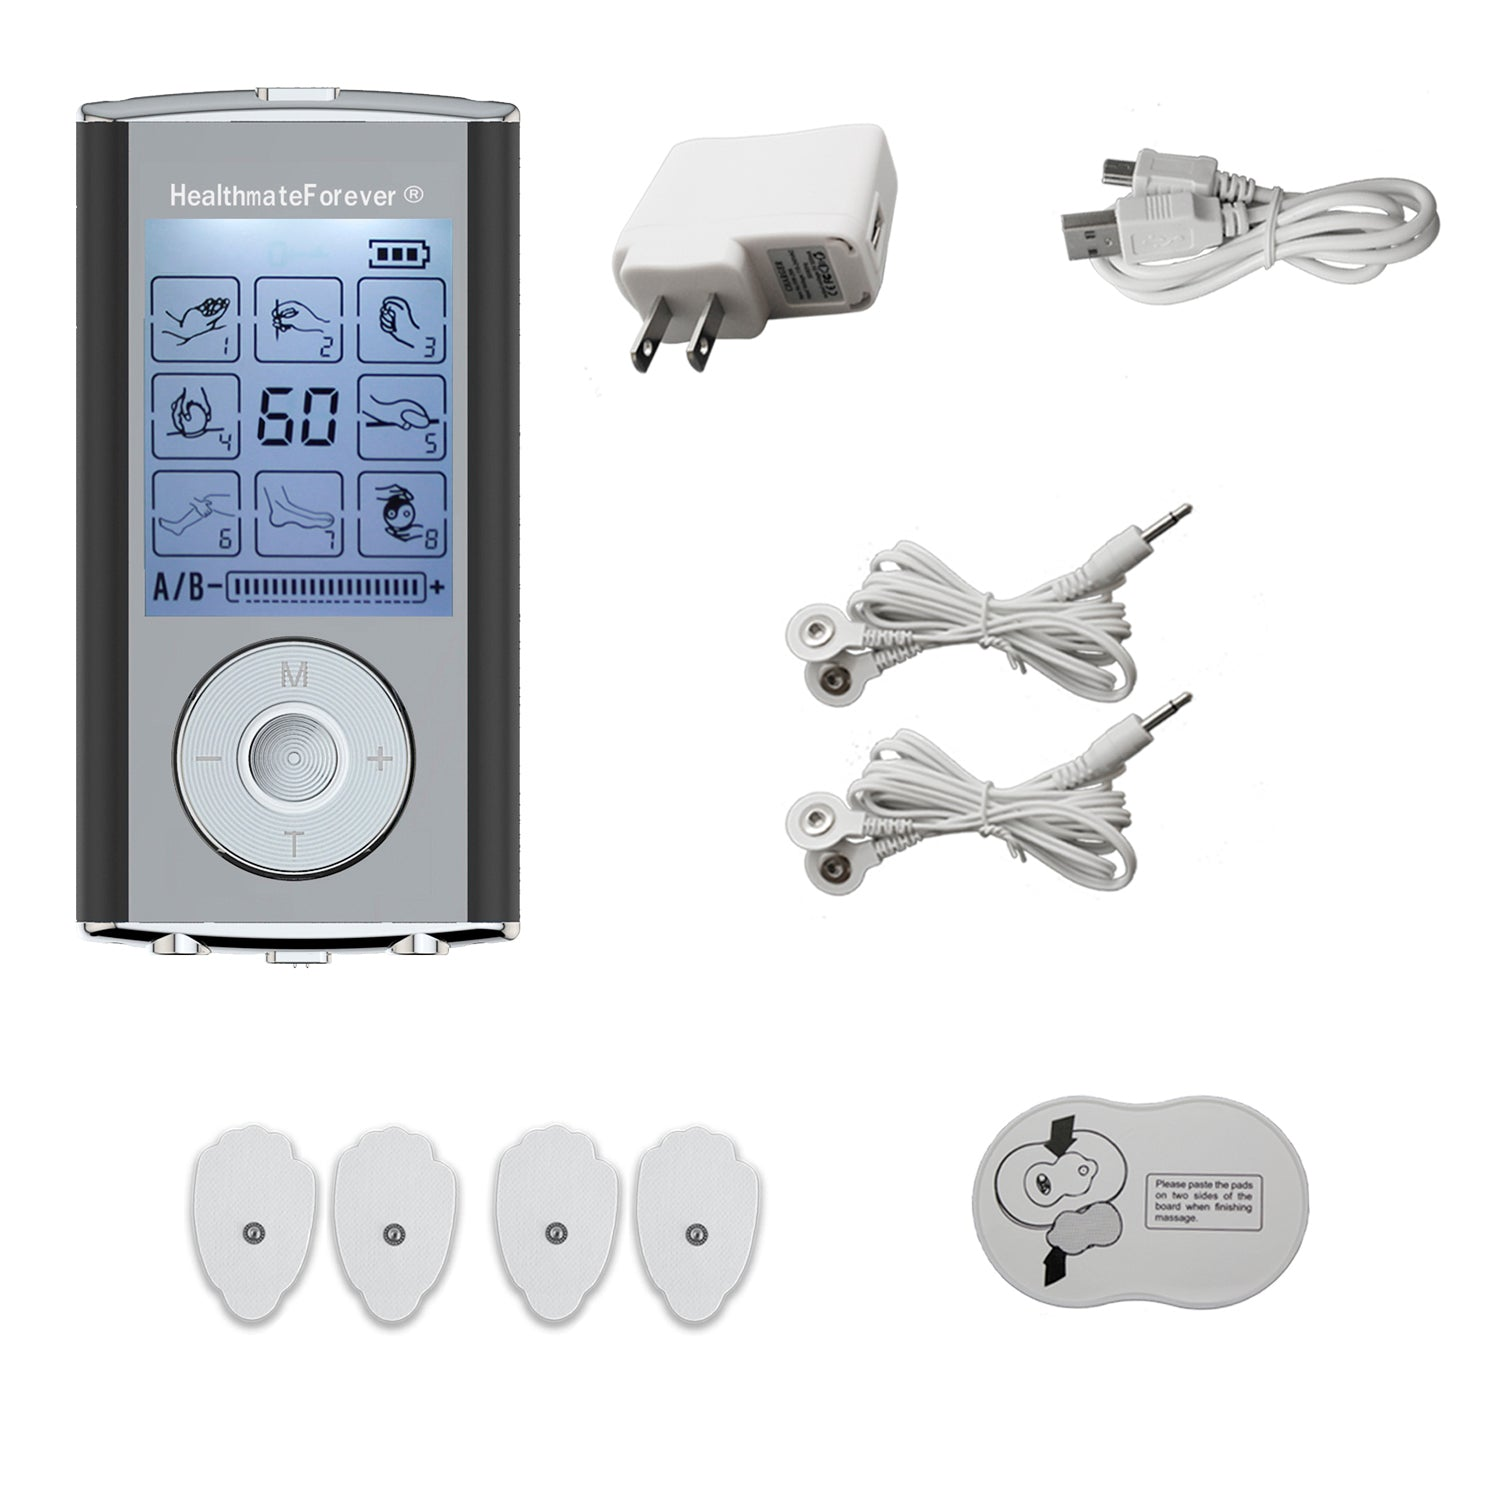 Dent & Scratch HM8AB TENS Unit & Muscle Stimulator, two independent AB channels like 2in1 machine - HealthmateForever.com